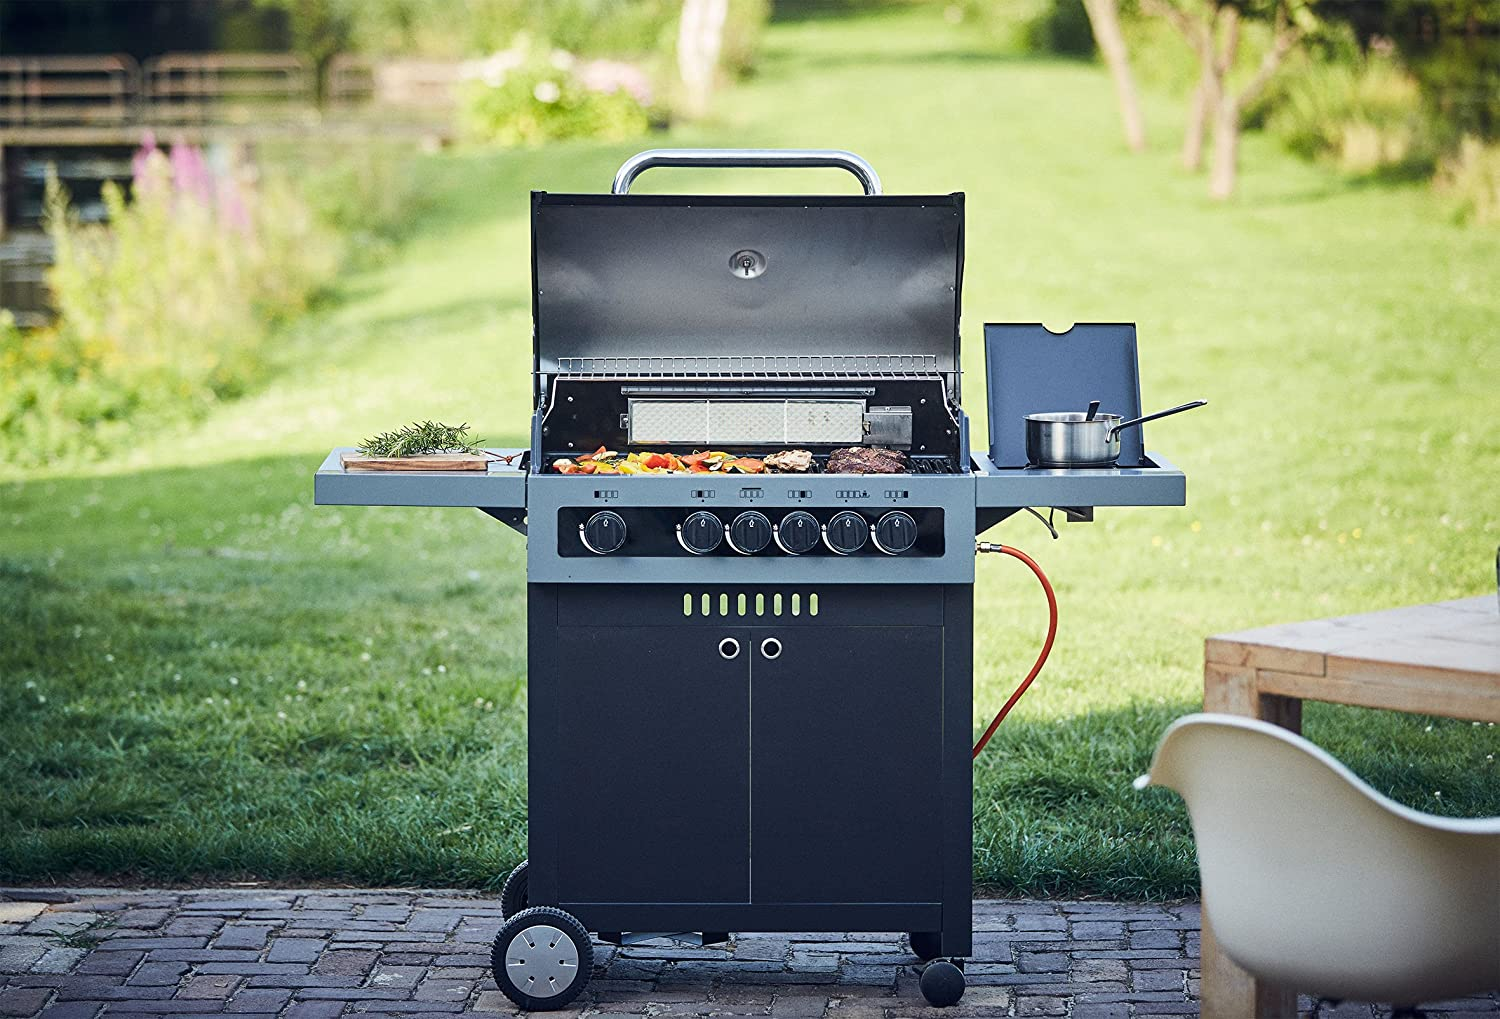 Aldi Süd Gasgrill Boston : Camping grill explorer aldi: gasgrill aldi enders boston black ik